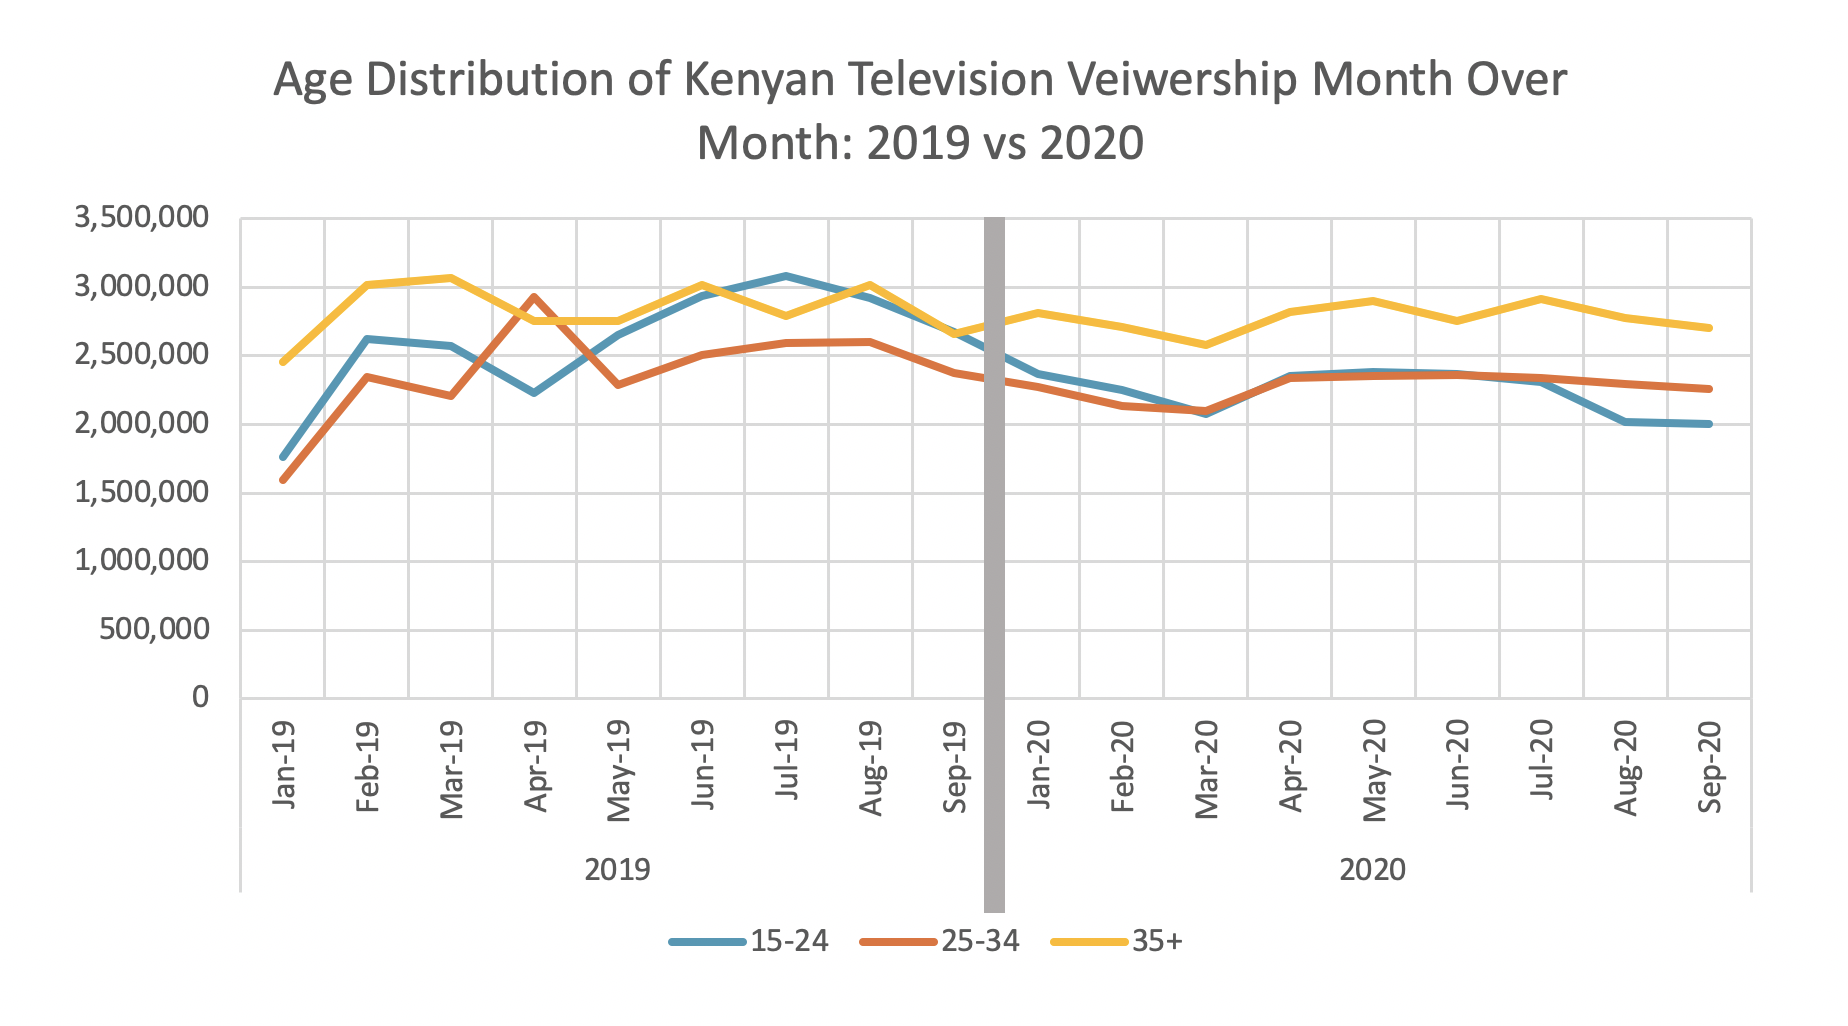 Age distribution of Kenyan Television Viewership